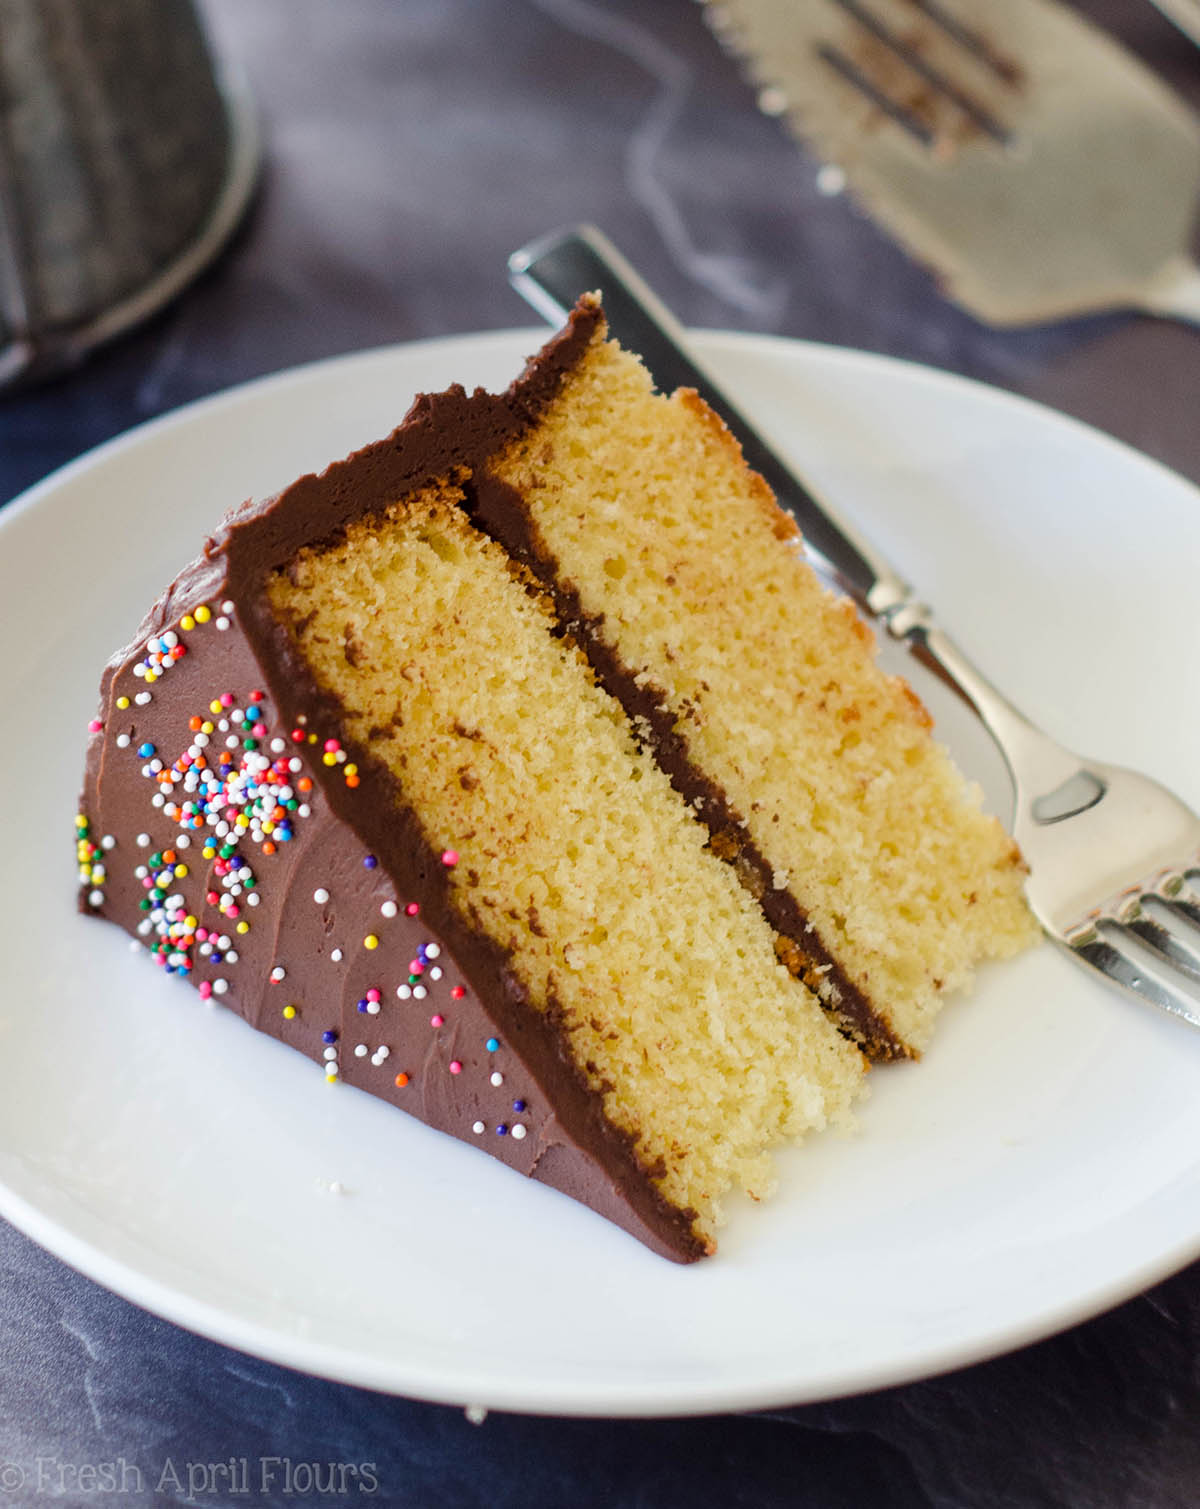 Butter Yellow Cake With Chocolate Frosting